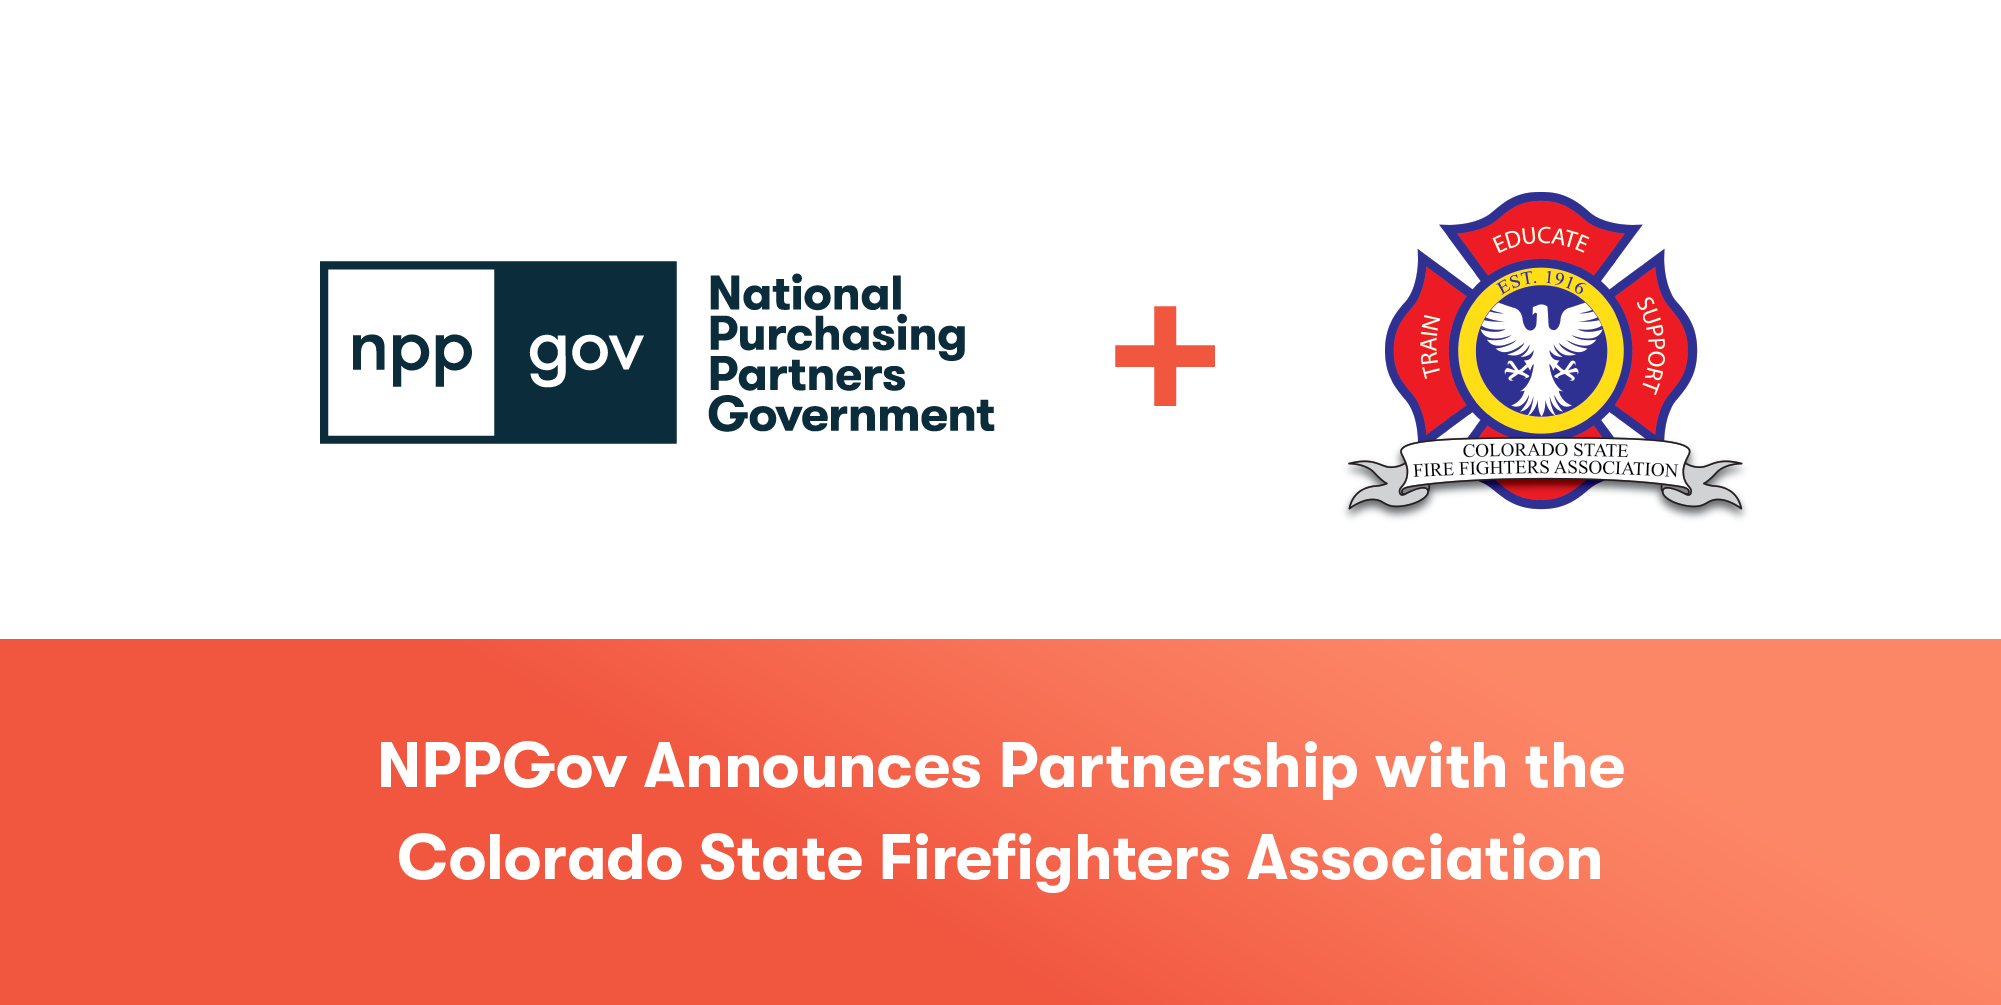 Colorado State Firefighters Association Partners With Public Safety GPO to Provide Cooperative Agreements to Their Members